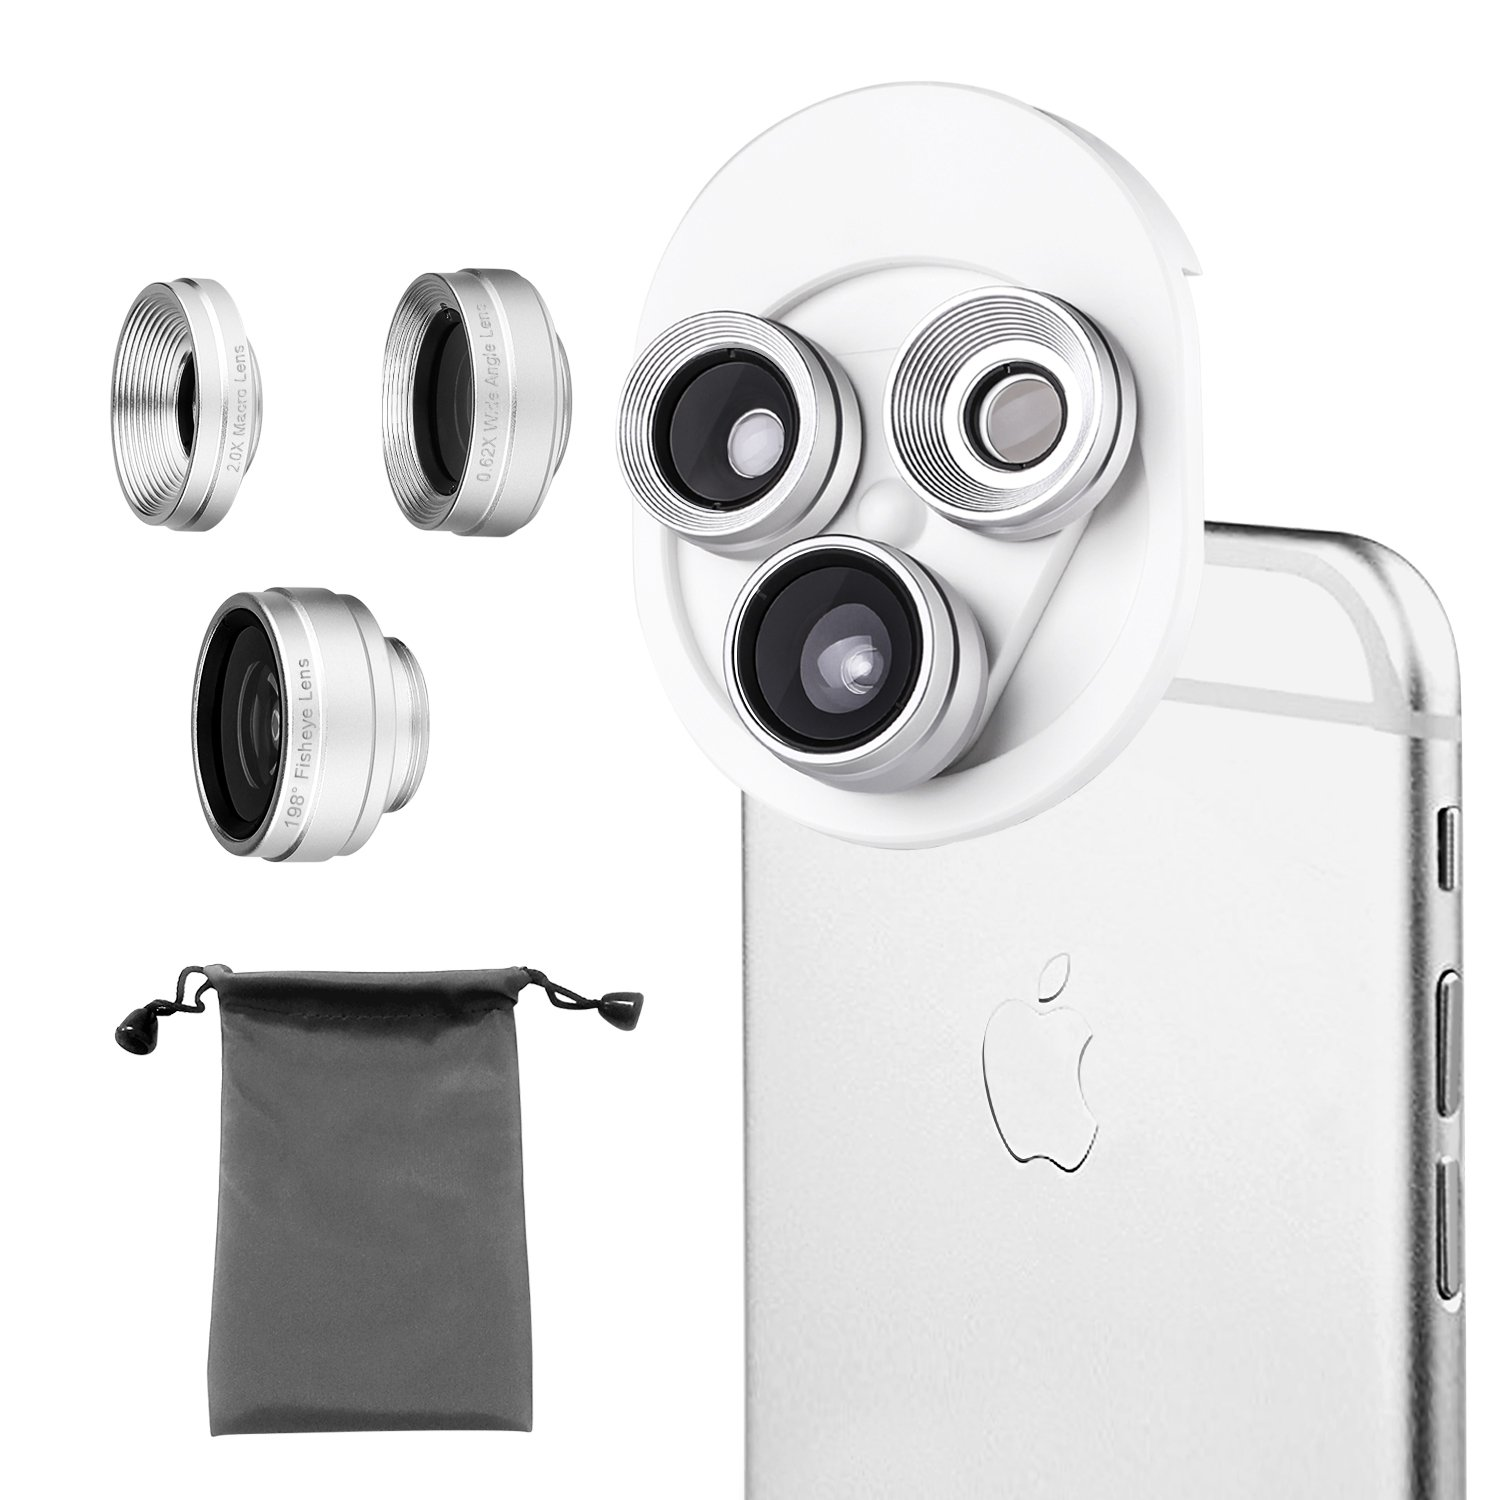 Phone Camera Lens 3 in 1, 20X Macro Lens, 198° Fisheye Lens, 0.62X Wide Angle Lens Clip On Universal HD Cell Phone Lens Kit Compatible Samsung iPhone6S/6Plus/6/Se/5/5S, Android Smartphones and More